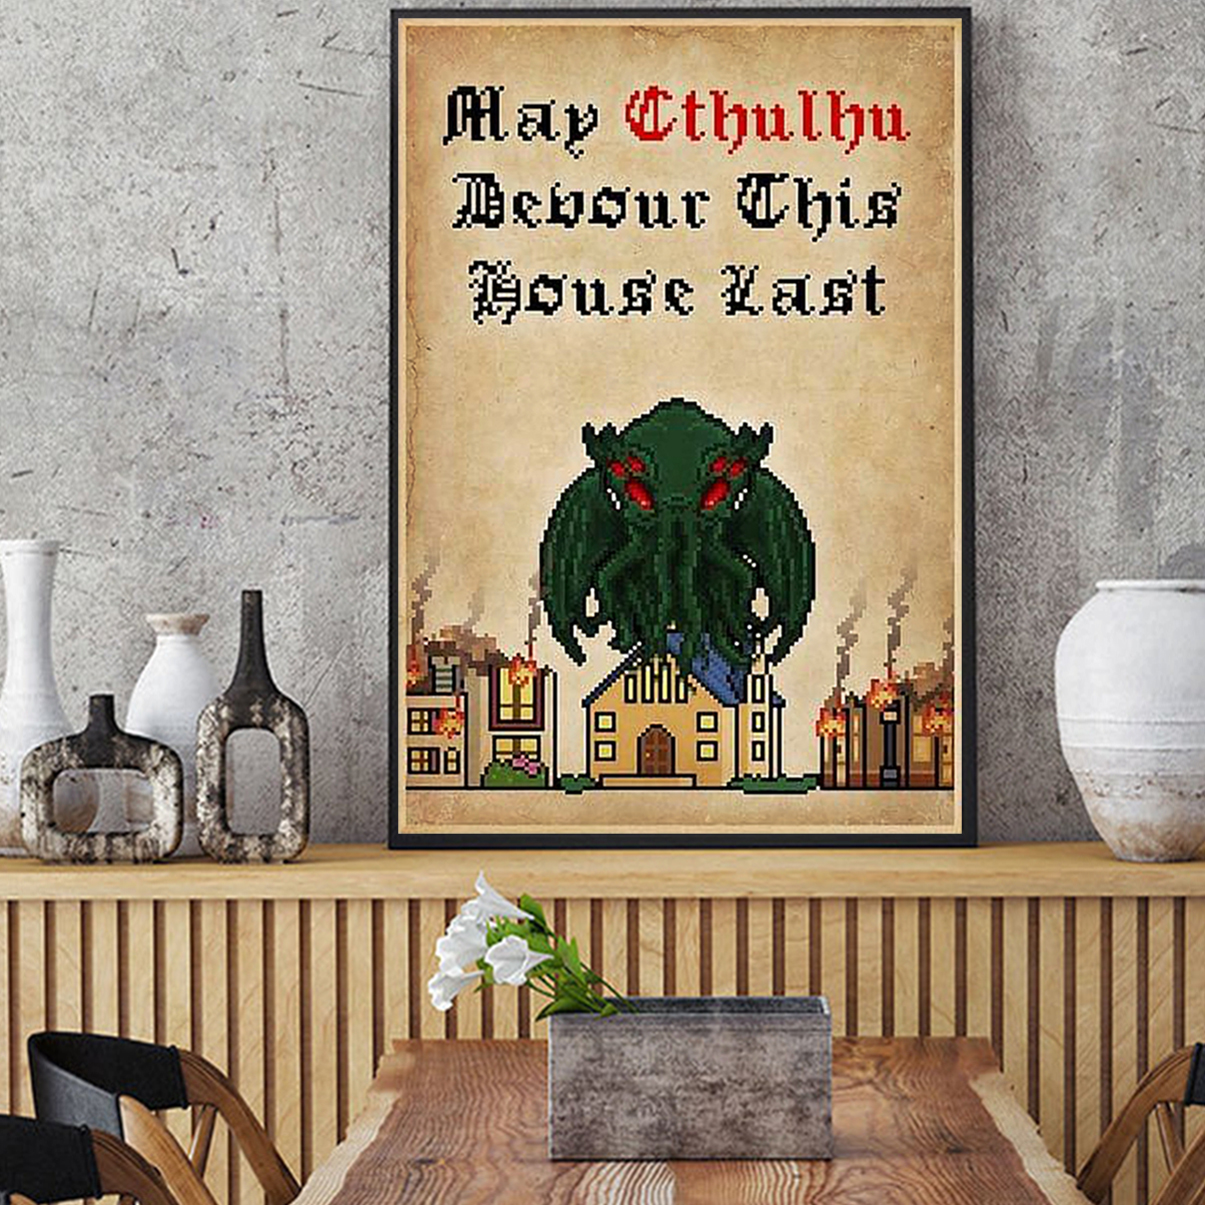 May cthulhu devour this house last poster A2